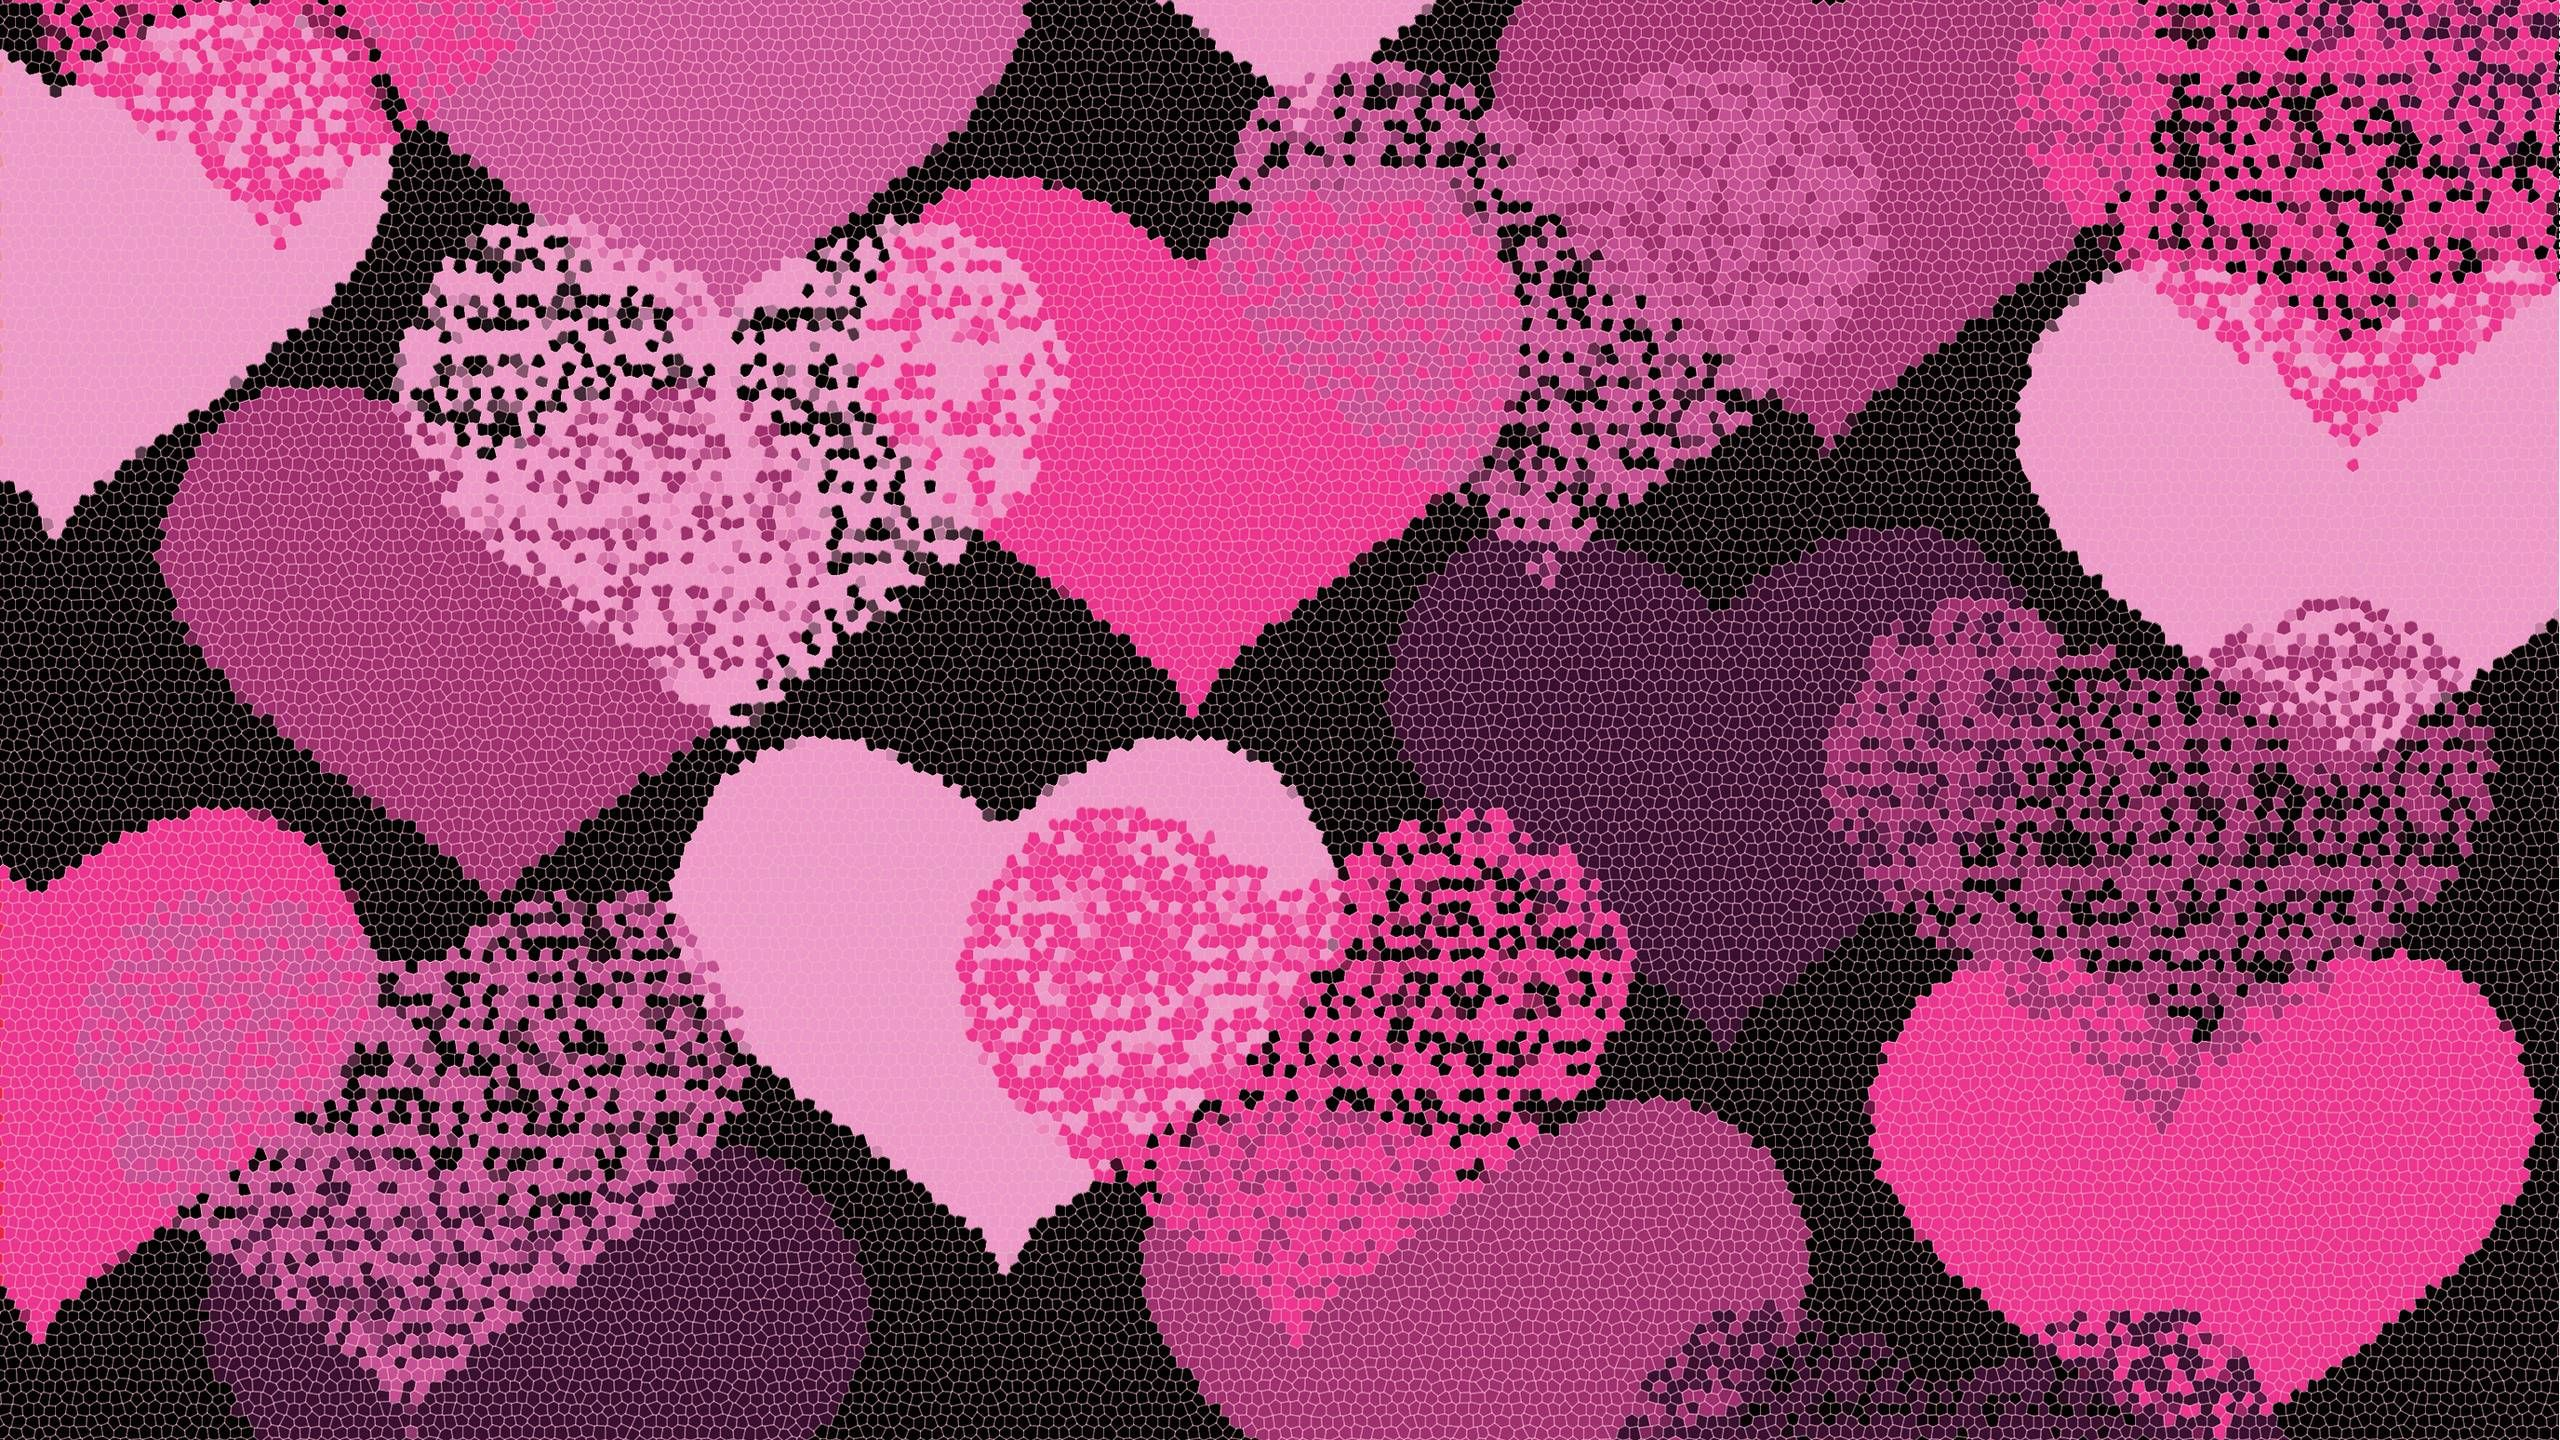 Beautiful love heart wallpapers techlovers l web design hd pictures of hearts wallpapers wallpapers hd wallpapers voltagebd Images